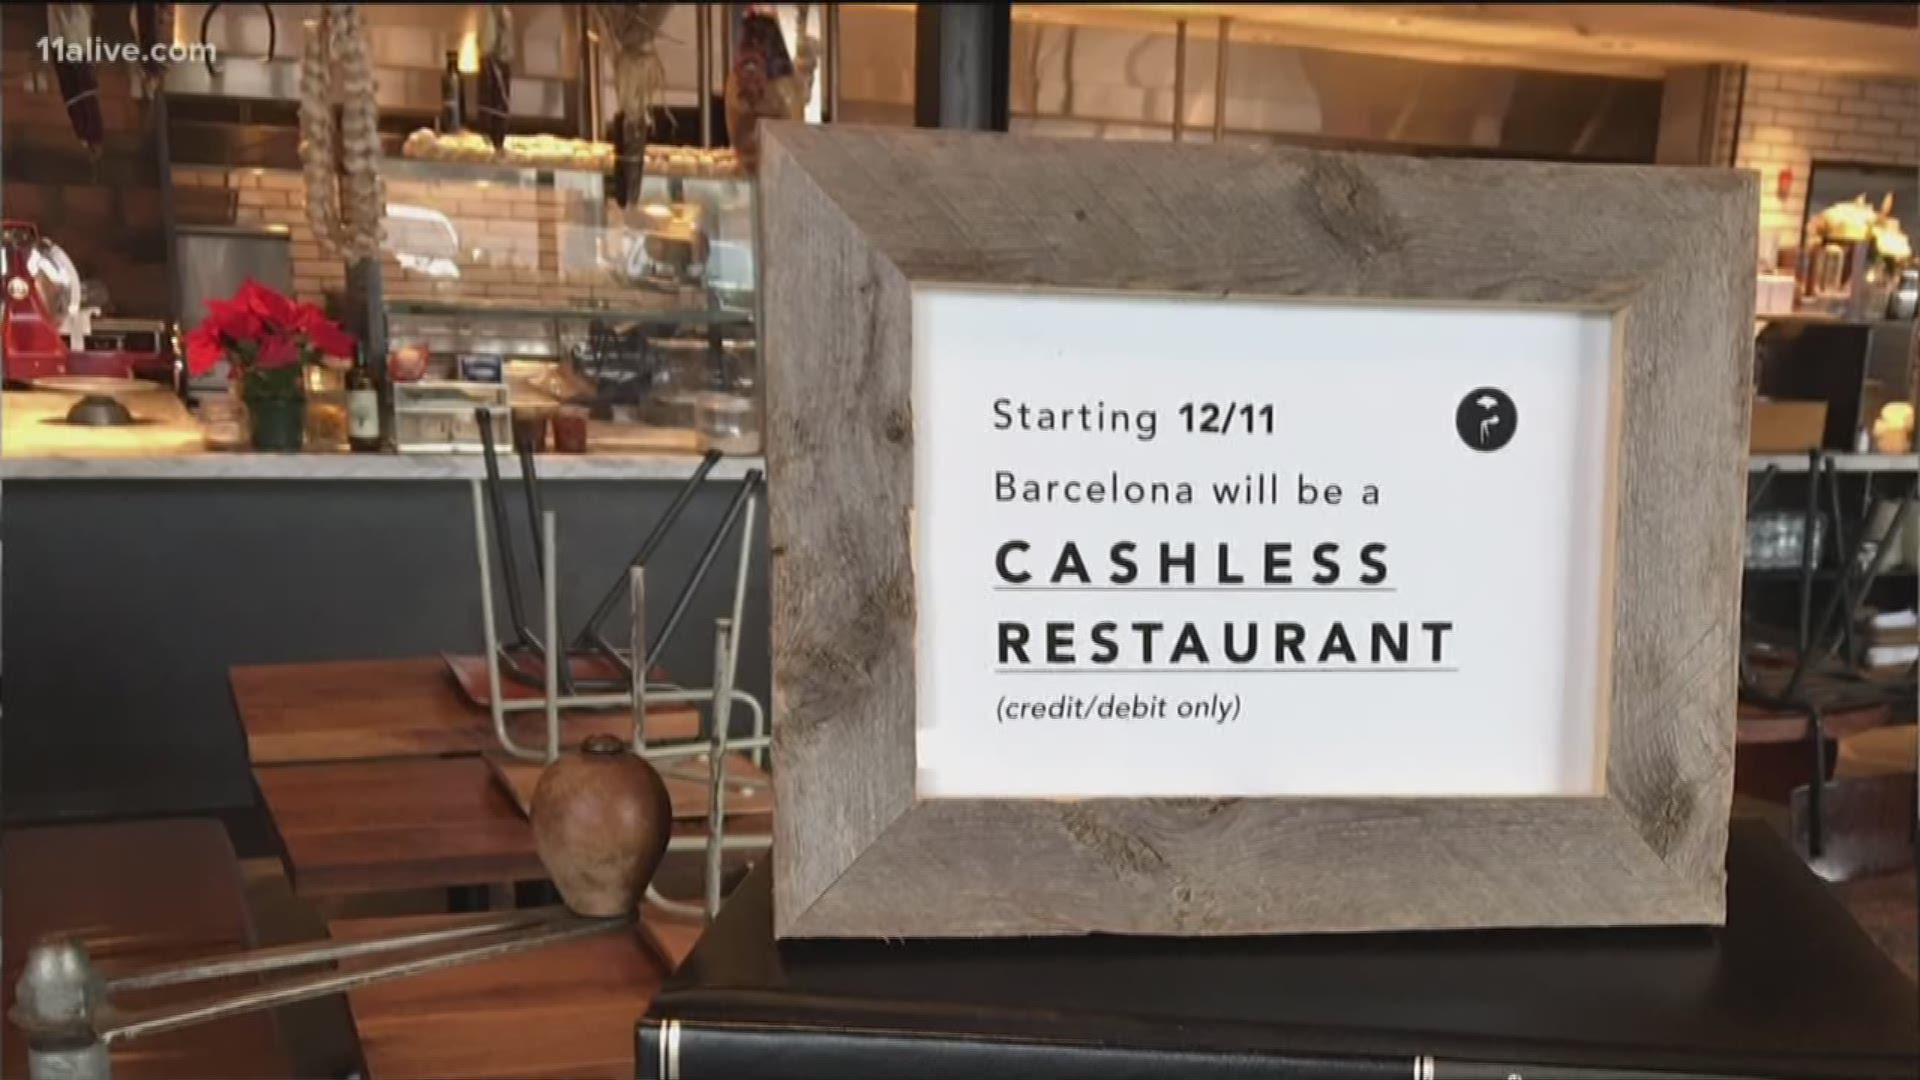 Robbery at gunpoint leads popular Atlanta restaurant Greens and Gravy to go cashless